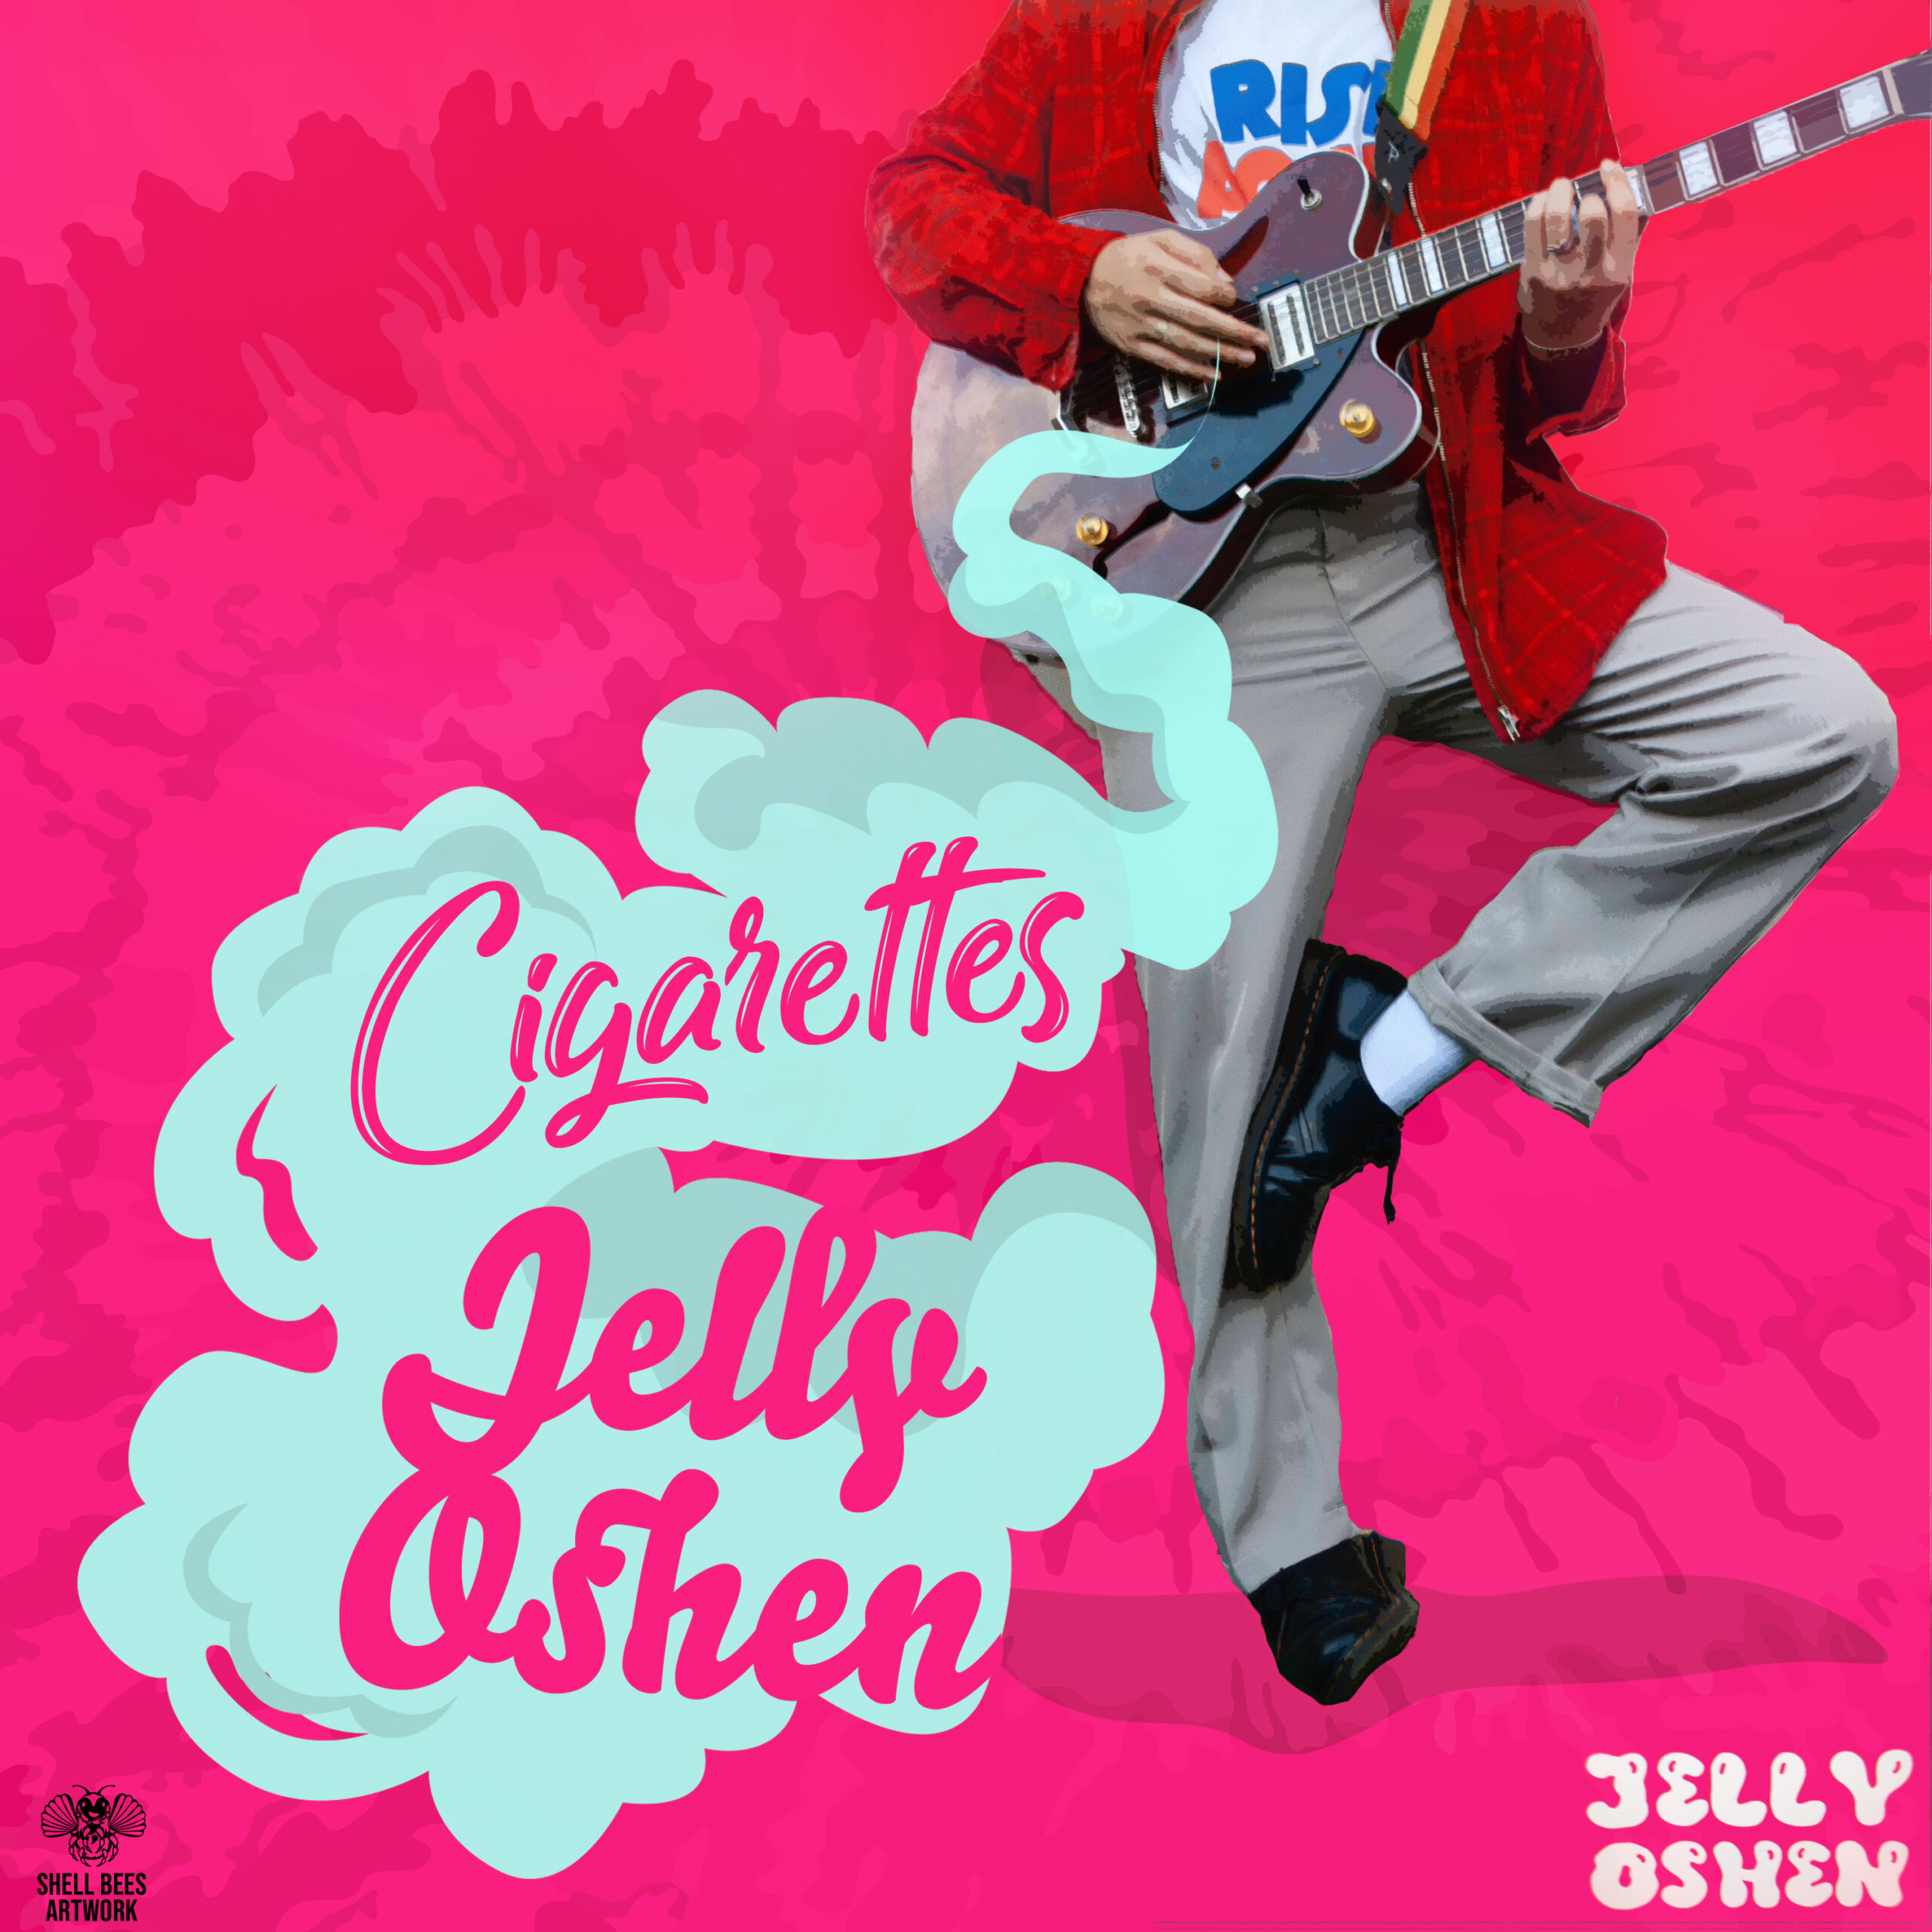 Jelly Oshen – Introducing – New Music – AR Promotion